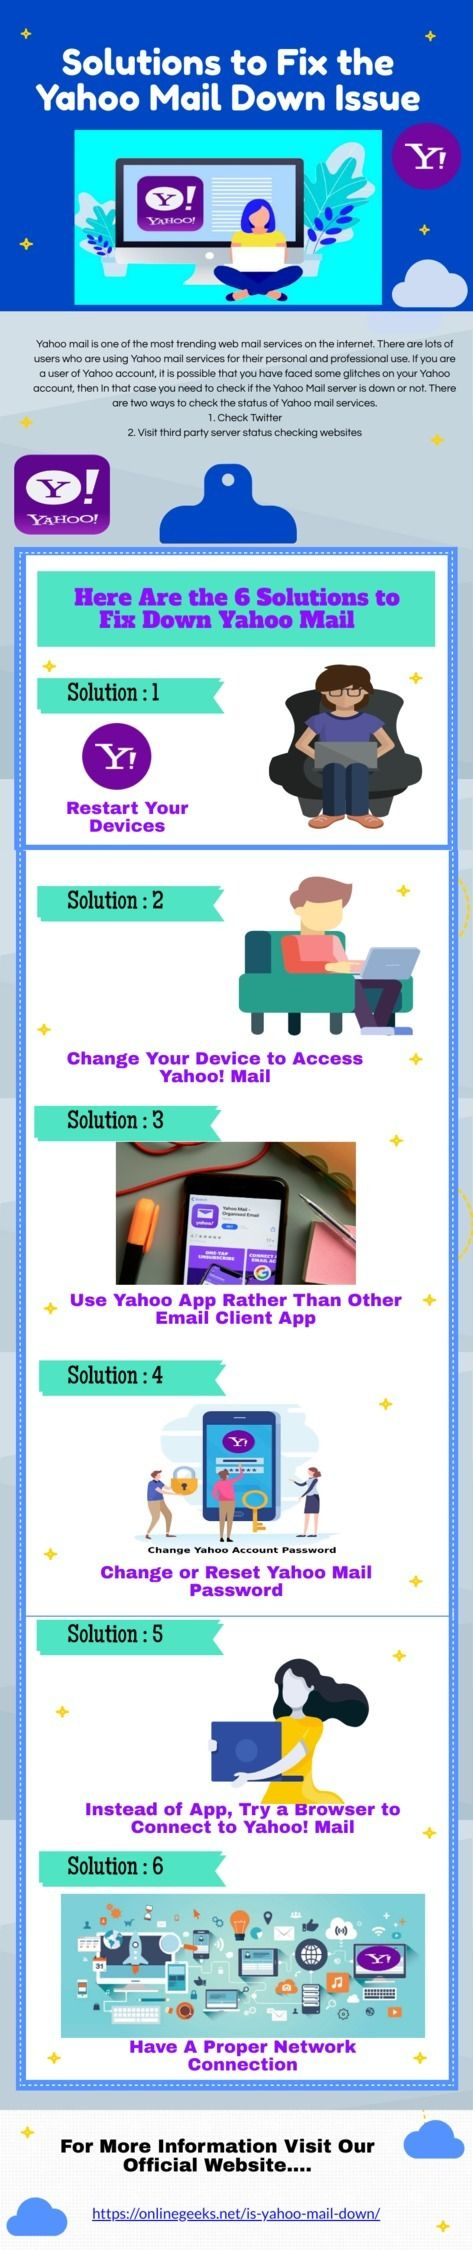 Yahoo mail famous email service - gsusangrey | ello